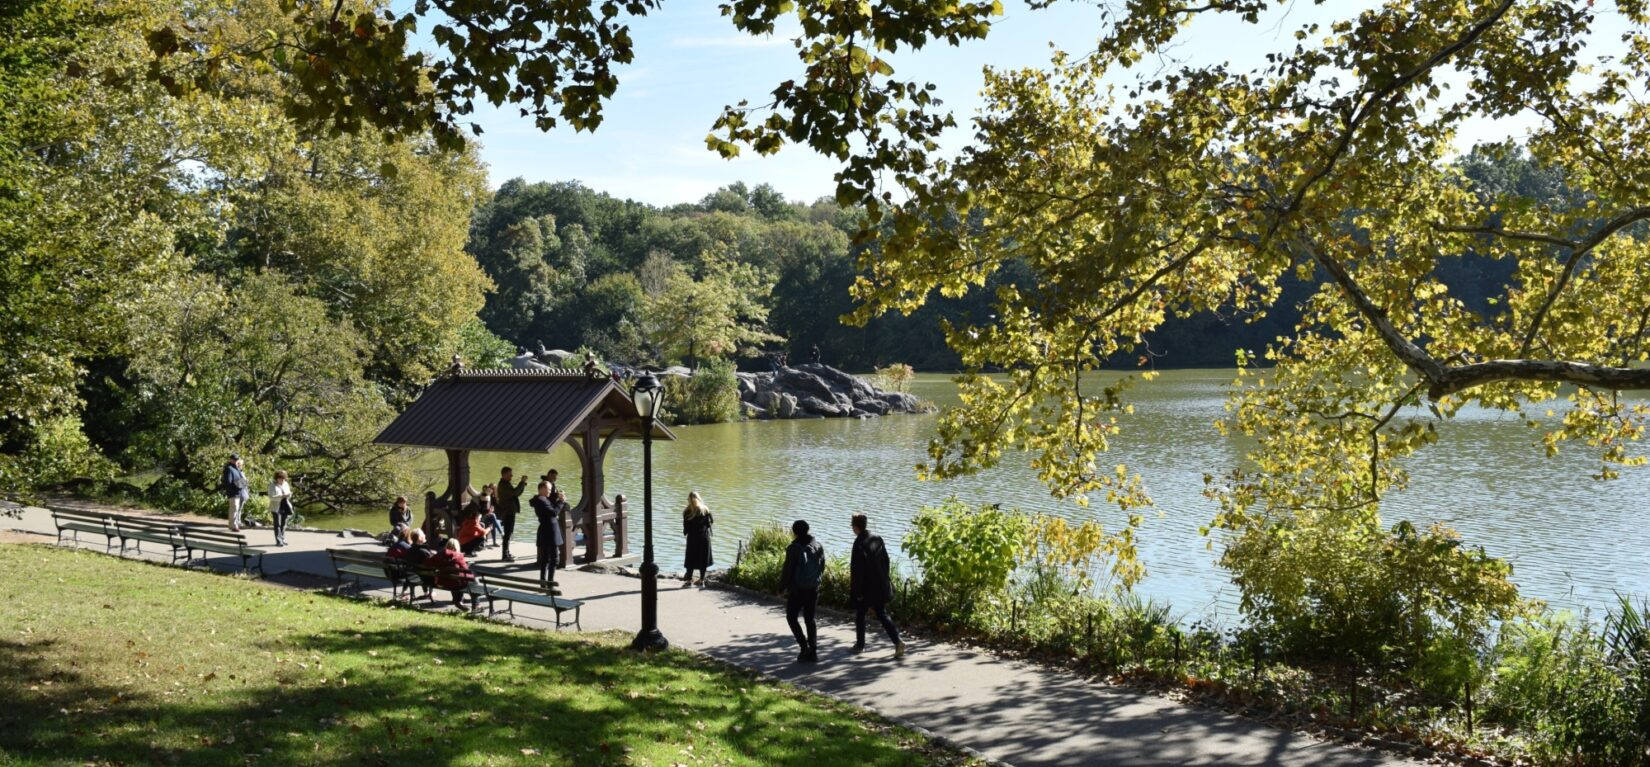 Visitors take in the view from the Hernshead Boat Landing on a sunny day